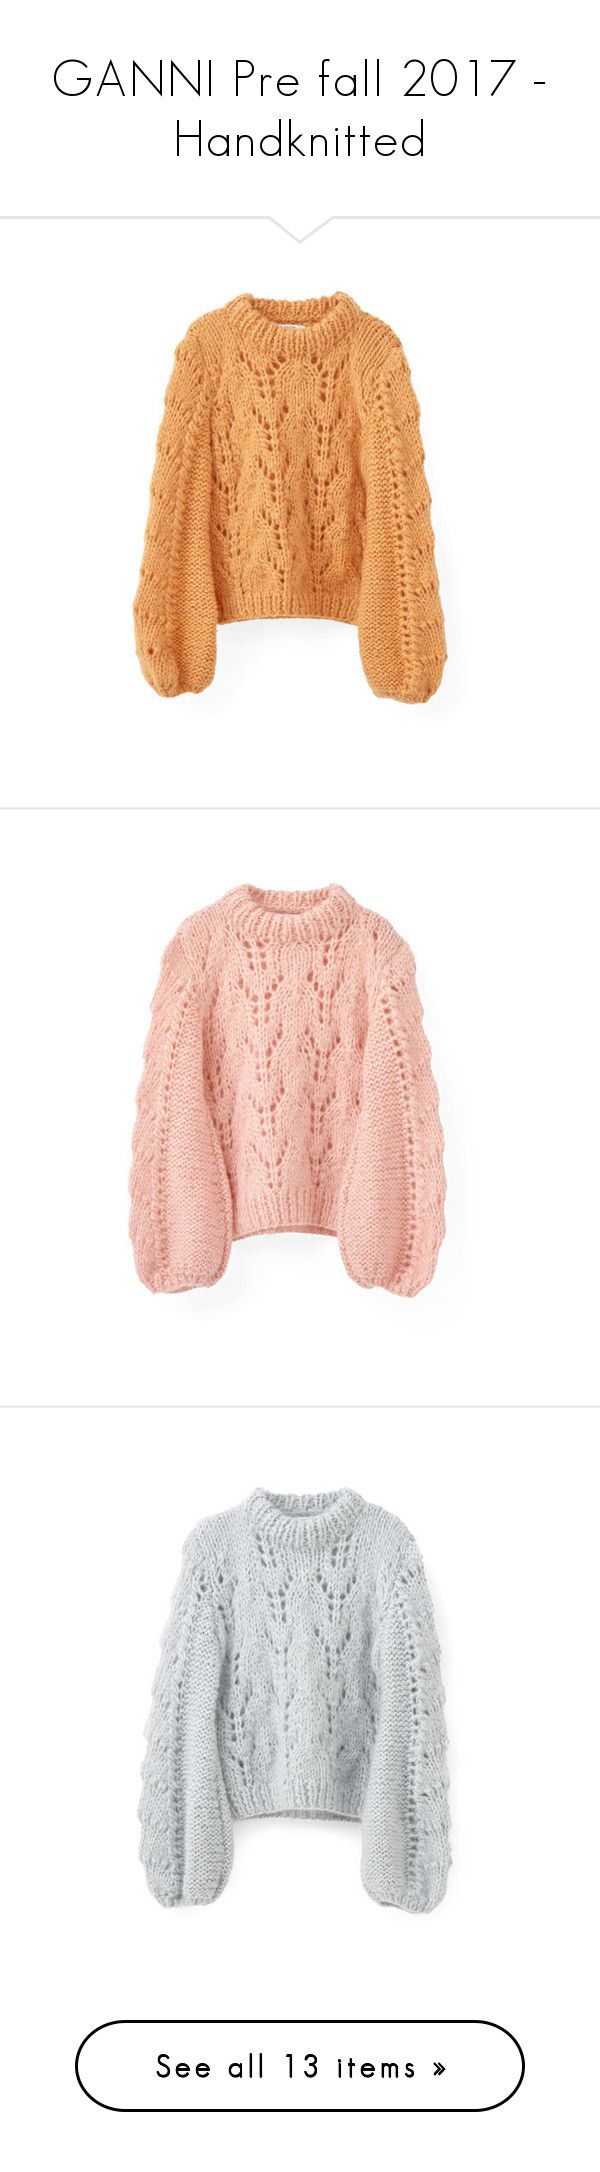 """GANNI Pre fall 2017 - Handknitted"" by ganniofficial ❤ liked on Polyvore featuring ganni, tops, sweaters, sweater pullover, scalloped tops, bell sleeve tops, beige pullover sweater, oversized sweater, print sweater and oversized pullover sweater"